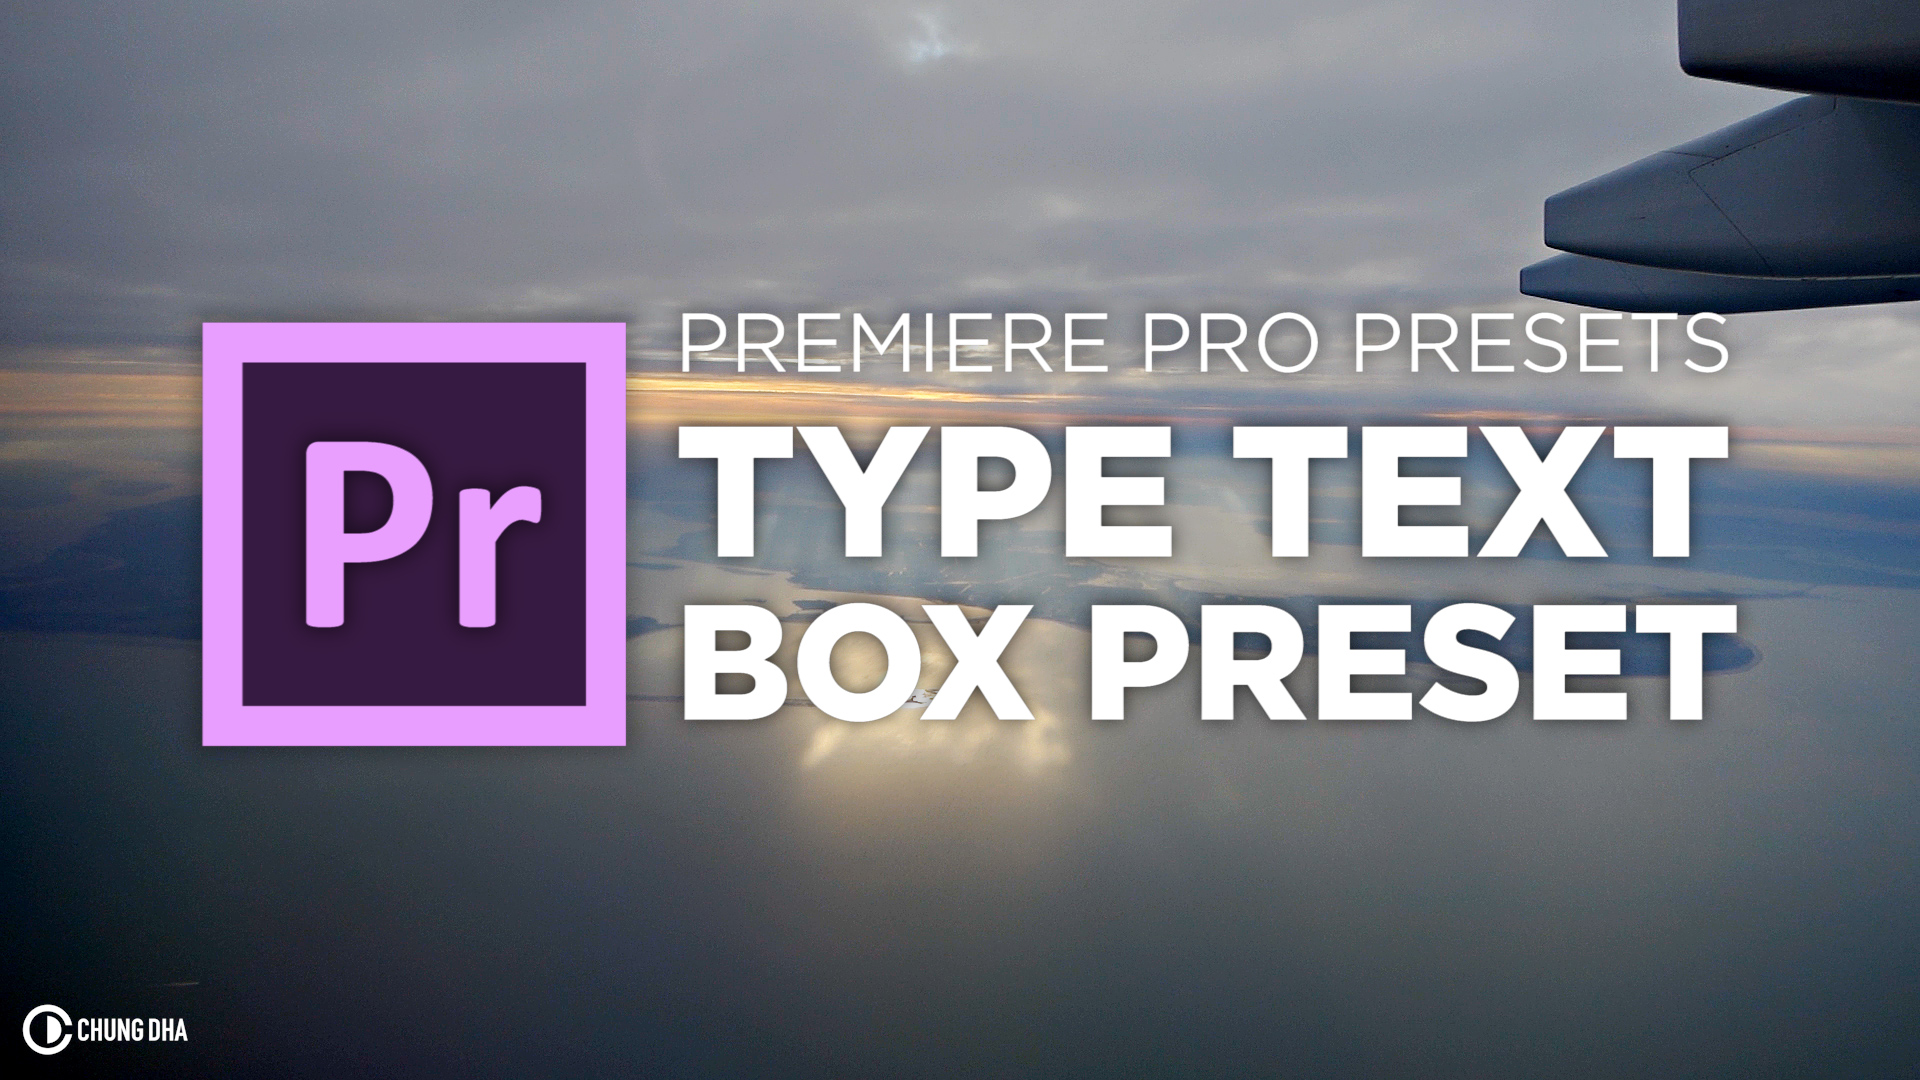 Type Text Box Preset #adobe #premierepro #videoediting